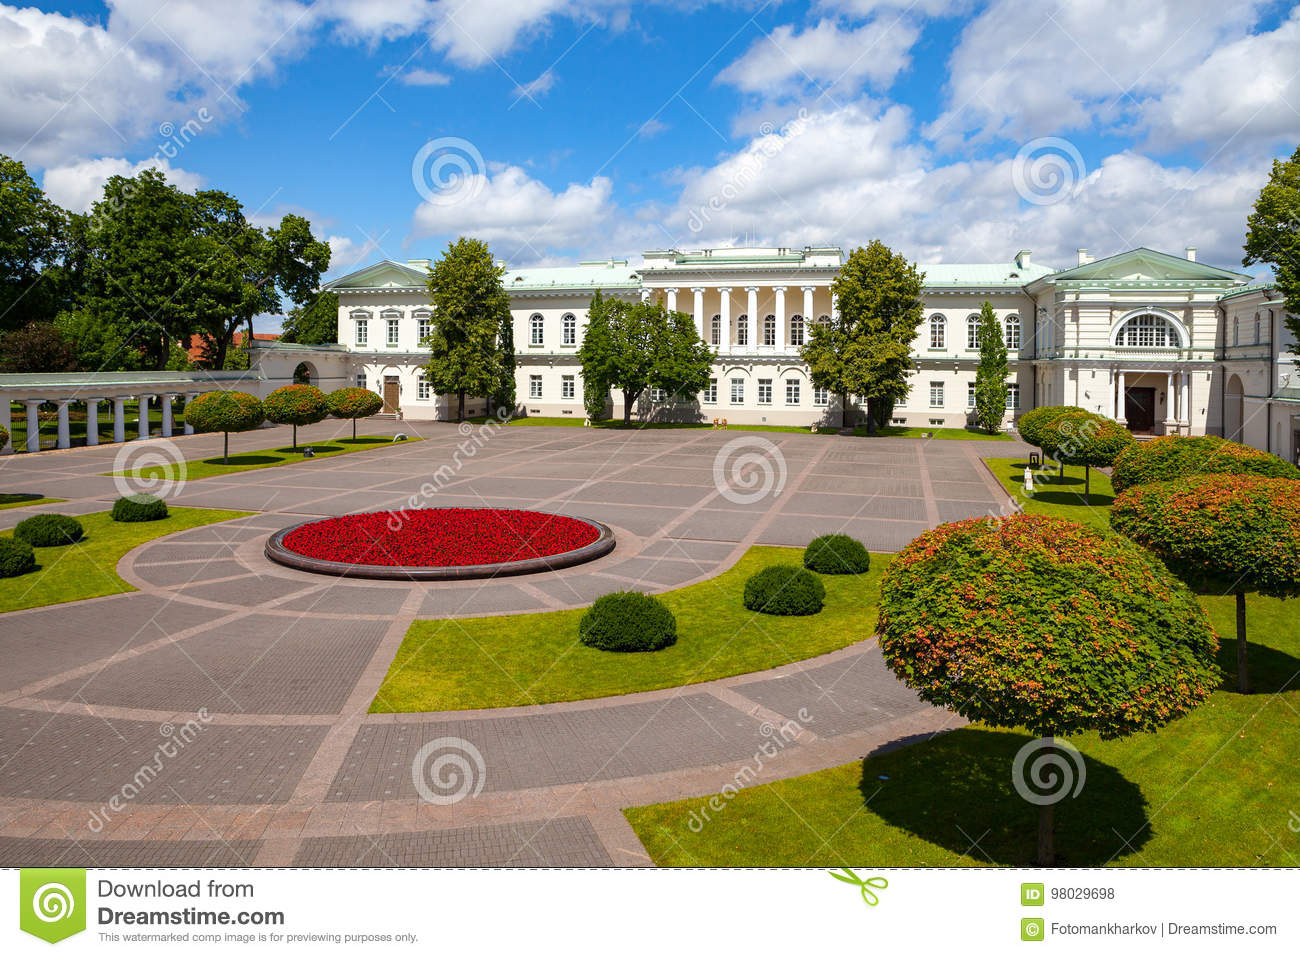 The Presidential Palace in Vilnius, the official residence of the President of Lithuania.